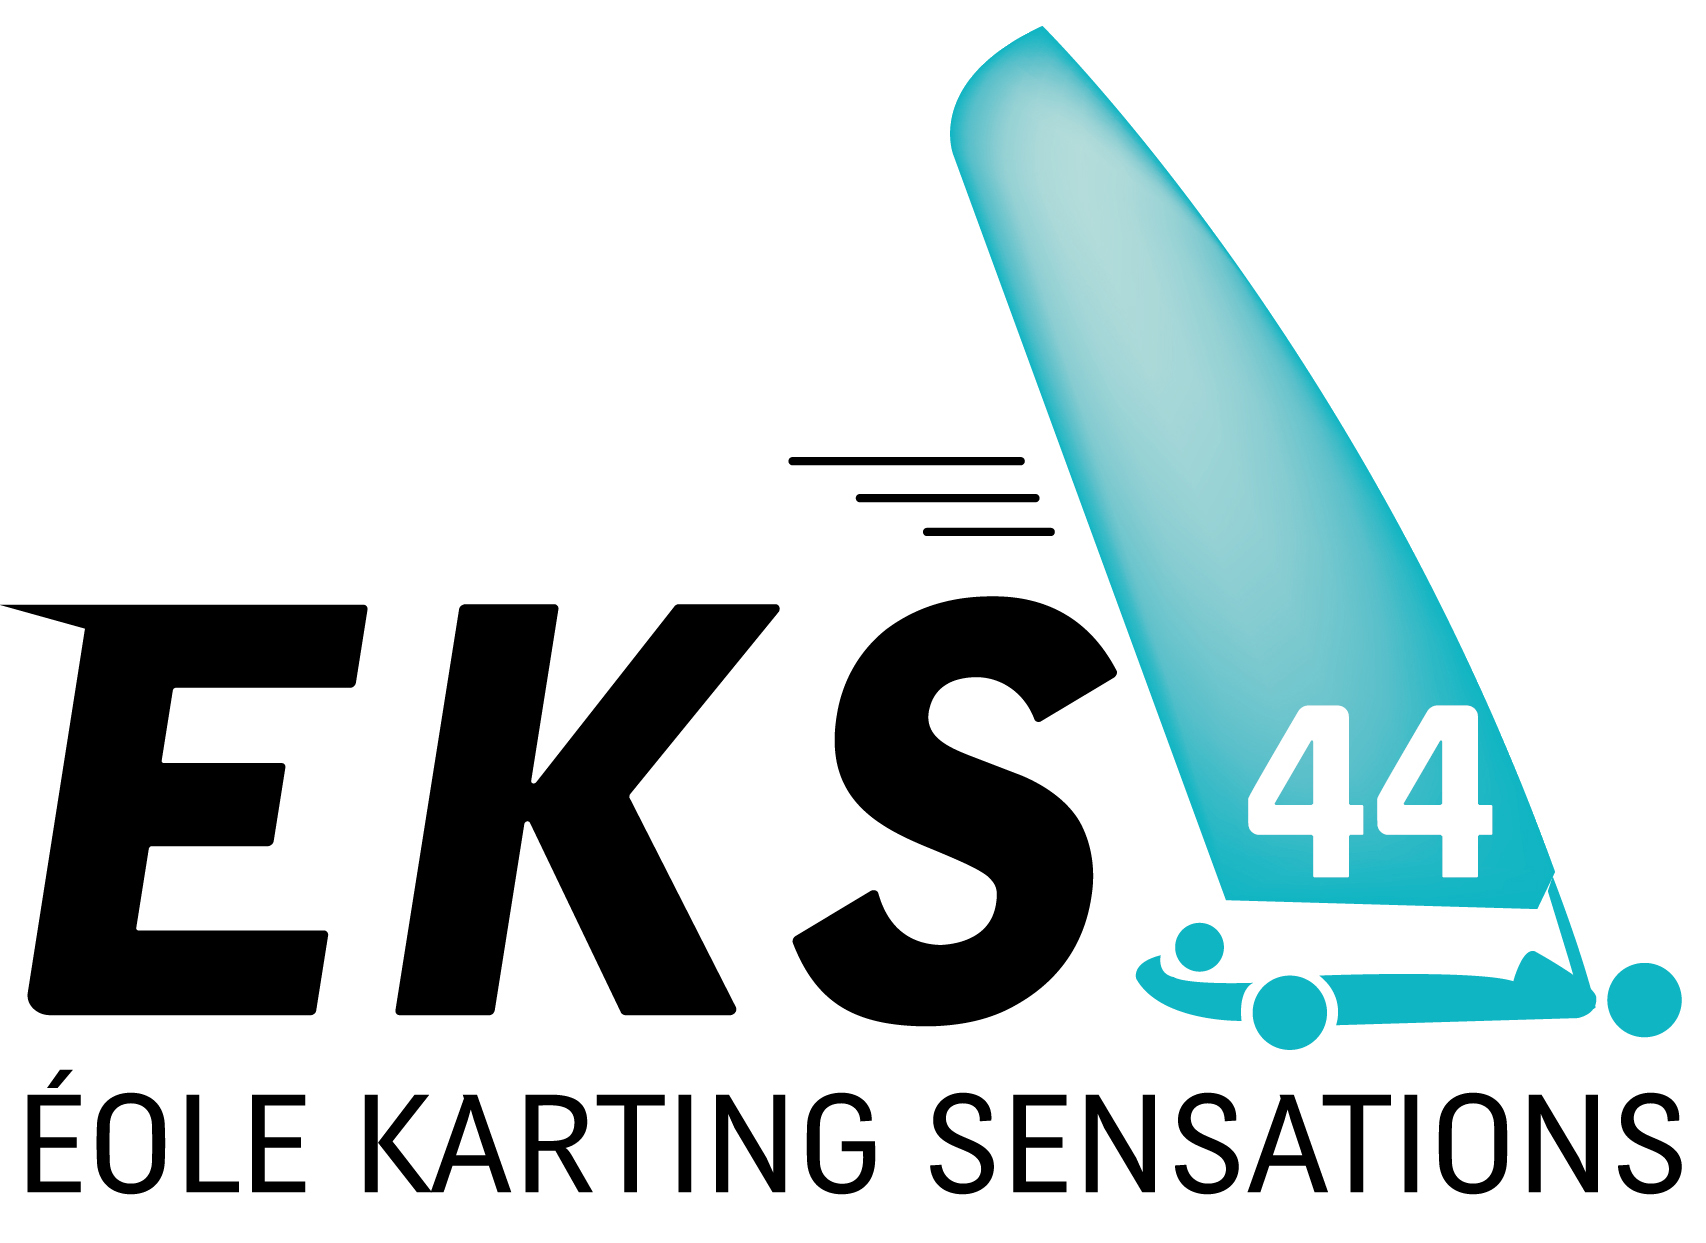 EOLE KARTING SENSATIONS – EKS 44©